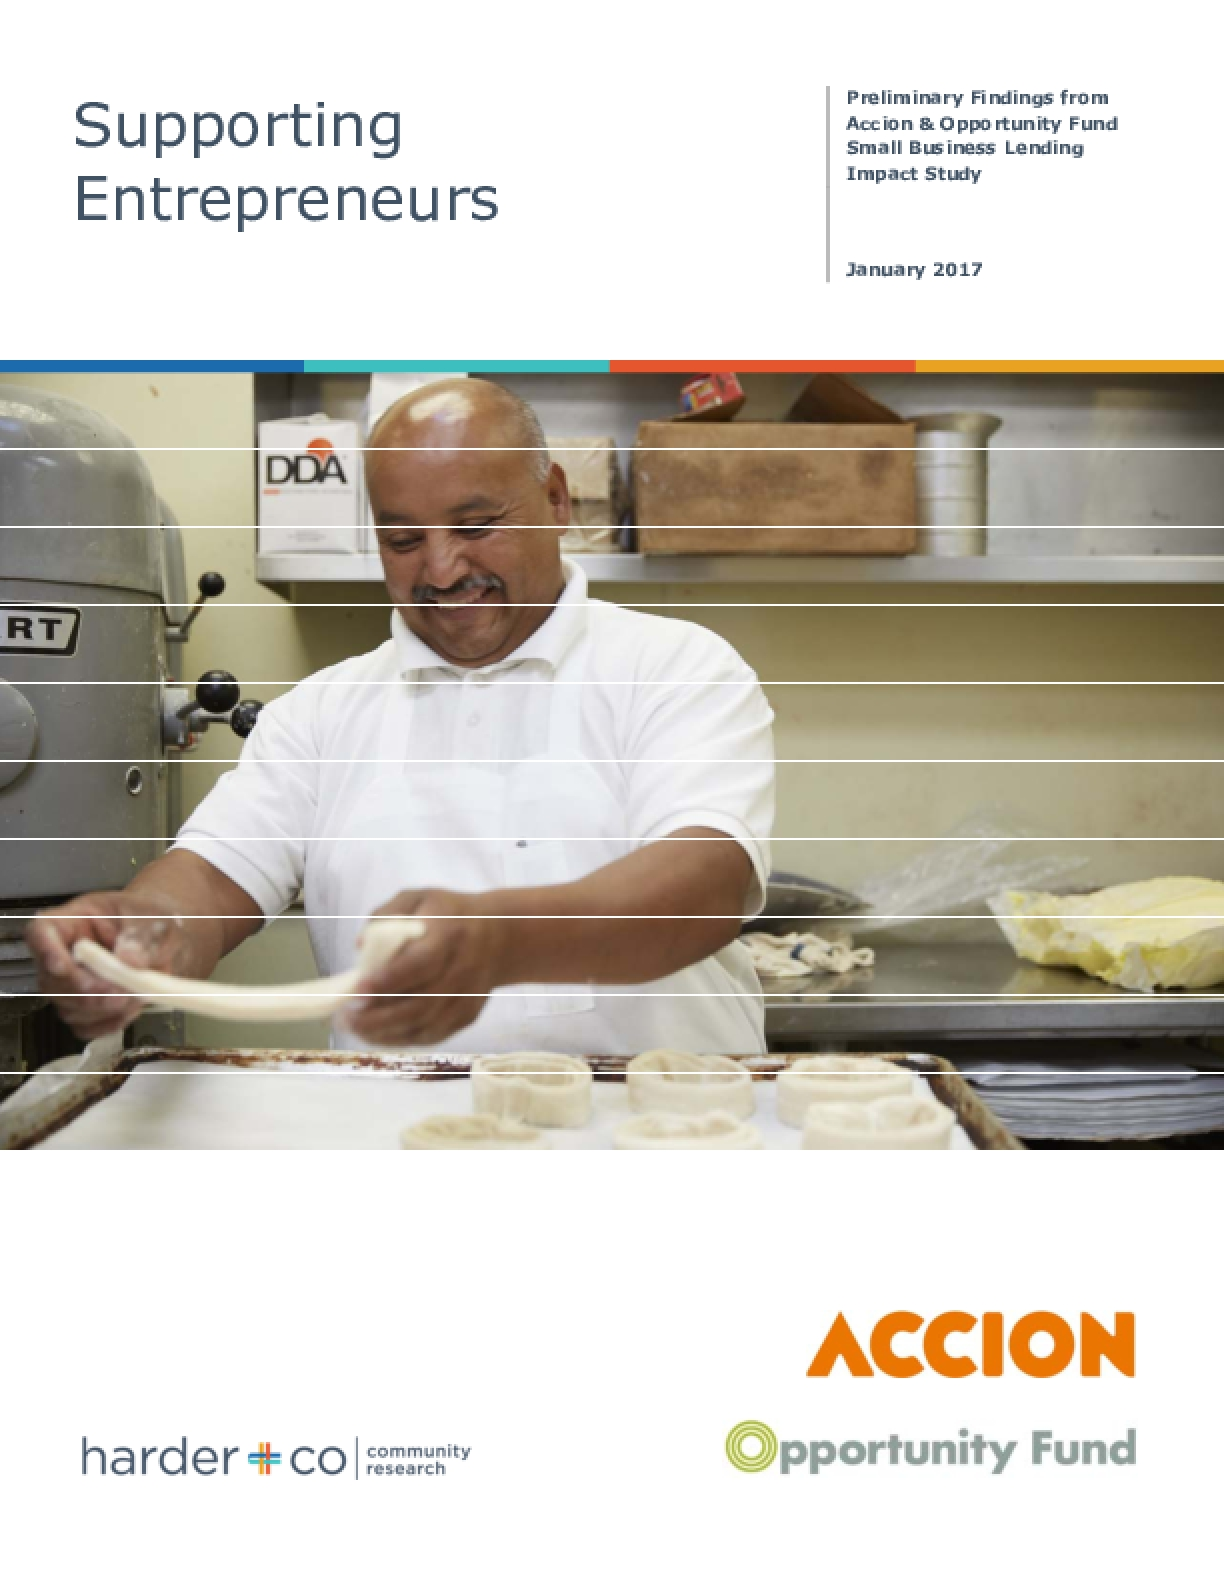 Supporting Entrepreneurs: Preliminary Findings from Accion & Opportunity Fund Small Business Lending Impact Study